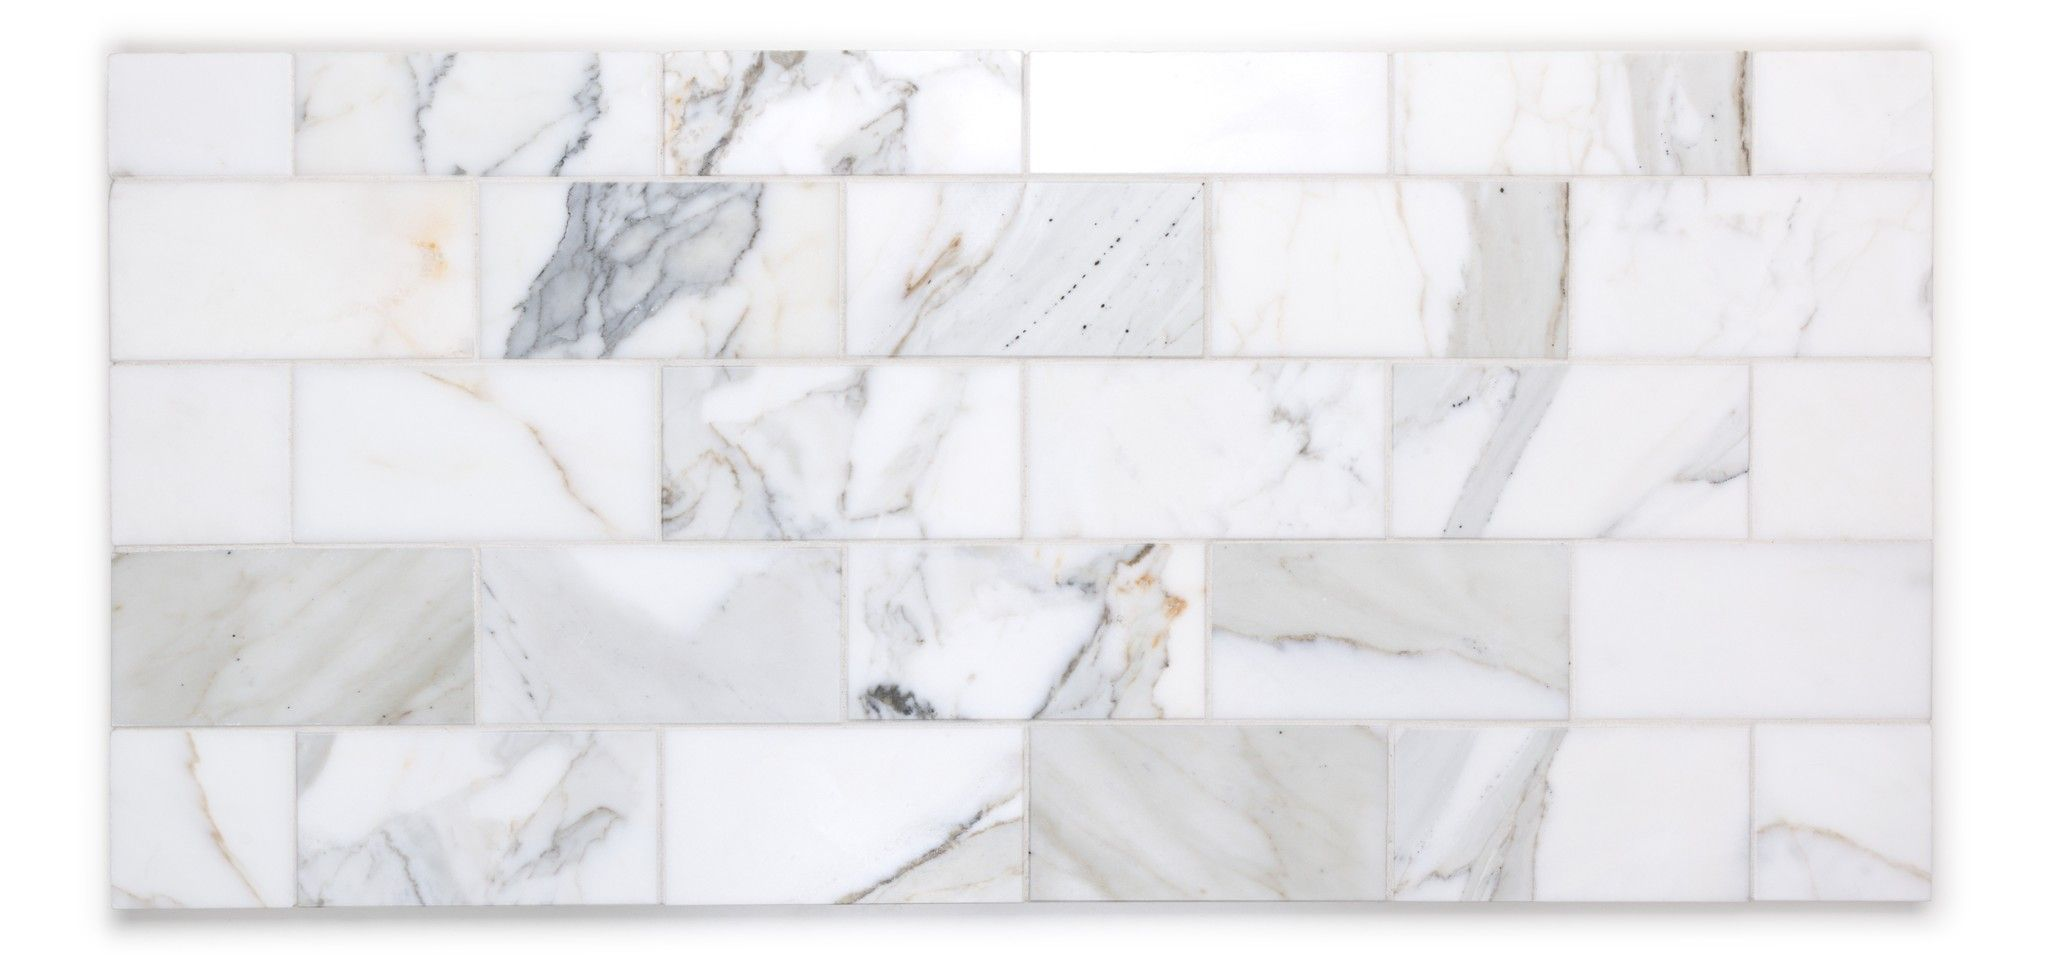 Our Goal Is To Help You Bring Life To Your Space With Stunning Quality Tile Stone Ann Sacks Tiles Bathroom Remodel Estimate Ann Sacks